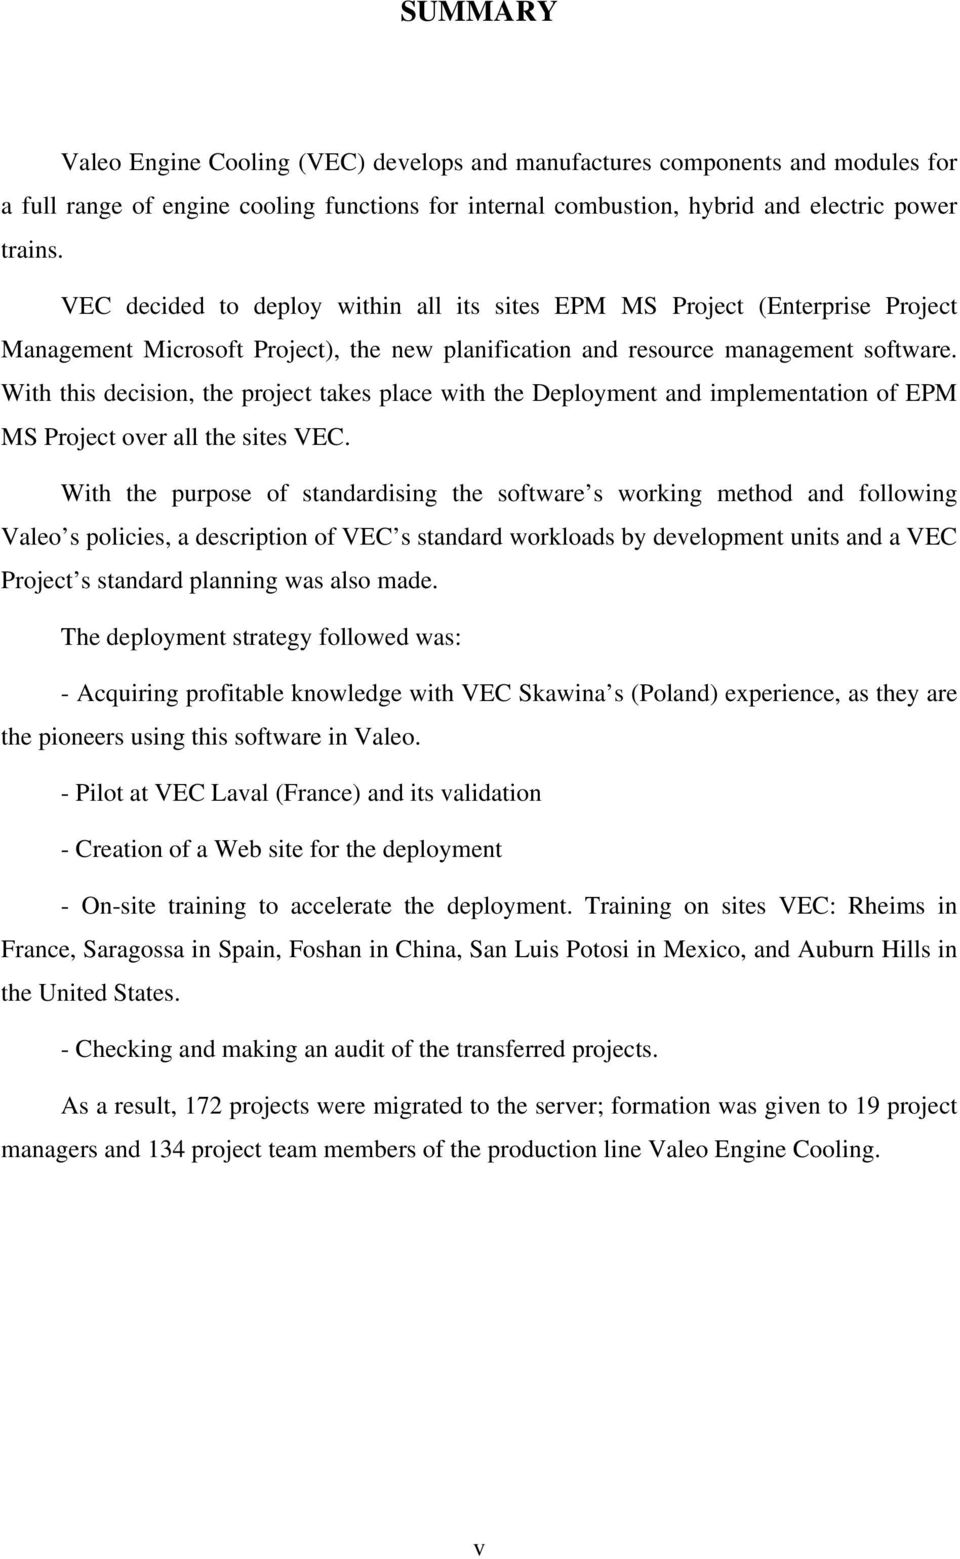 With this decision, the project takes place with the Deployment and implementation of EPM MS Project over all the sites VEC.